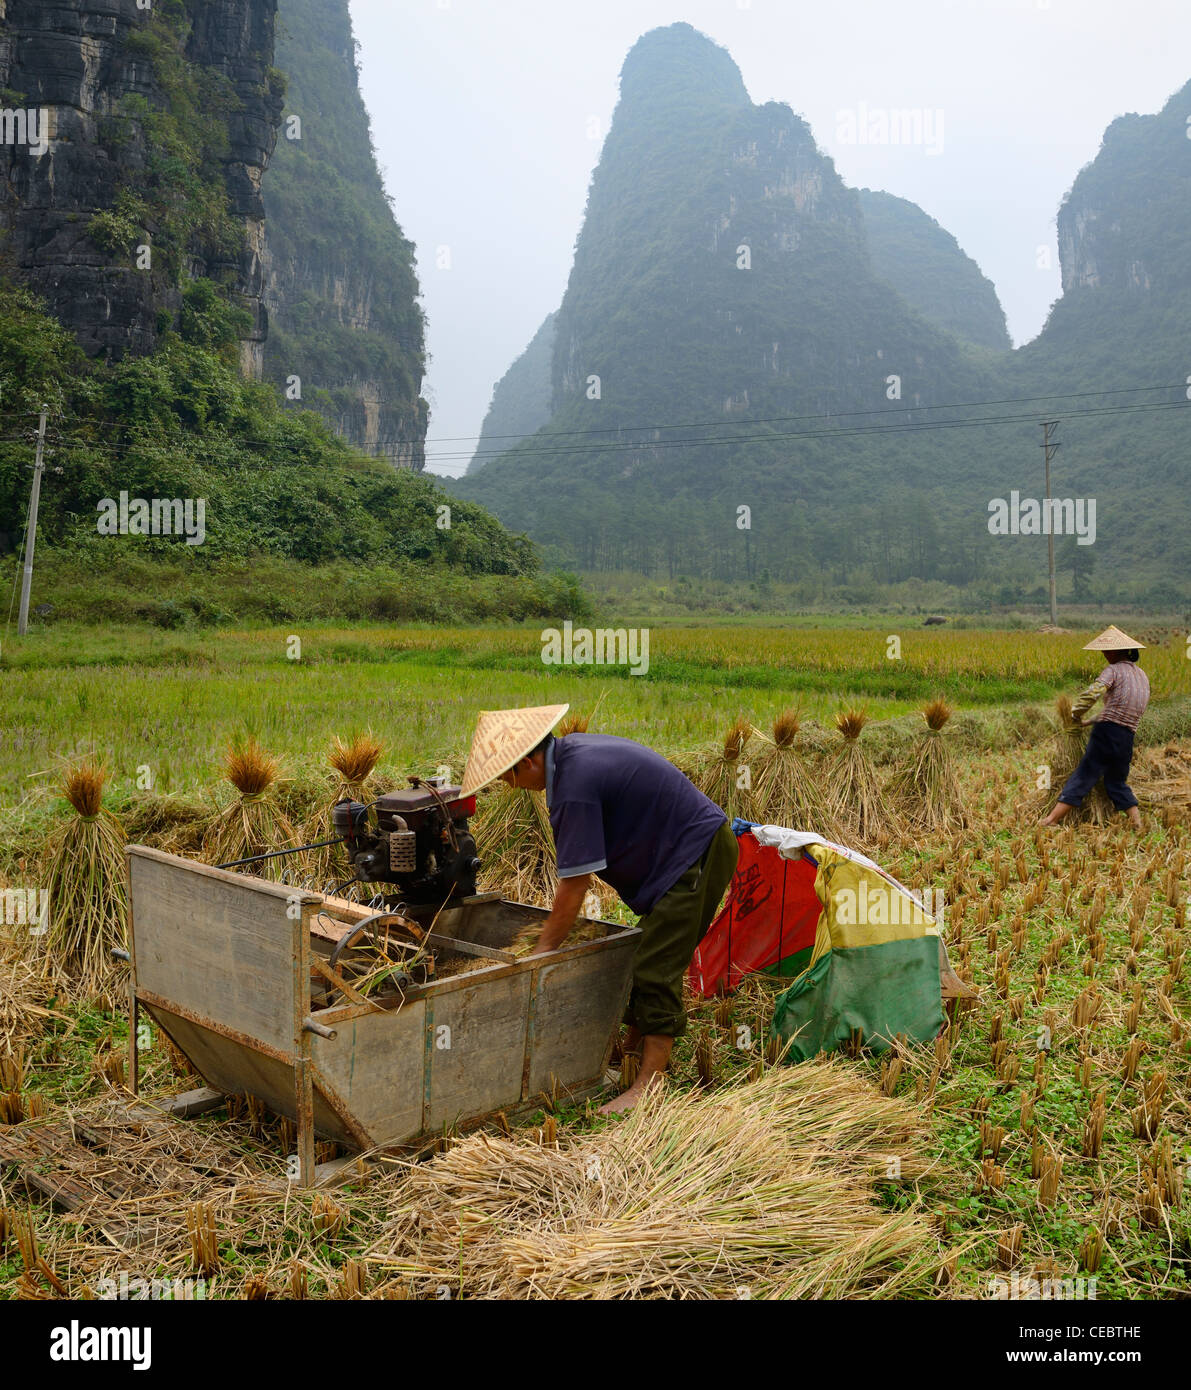 Farmers bundling straw and harvesting rice with Karst limestone peaks near Yangshuo Peoples Republic of China - Stock Image